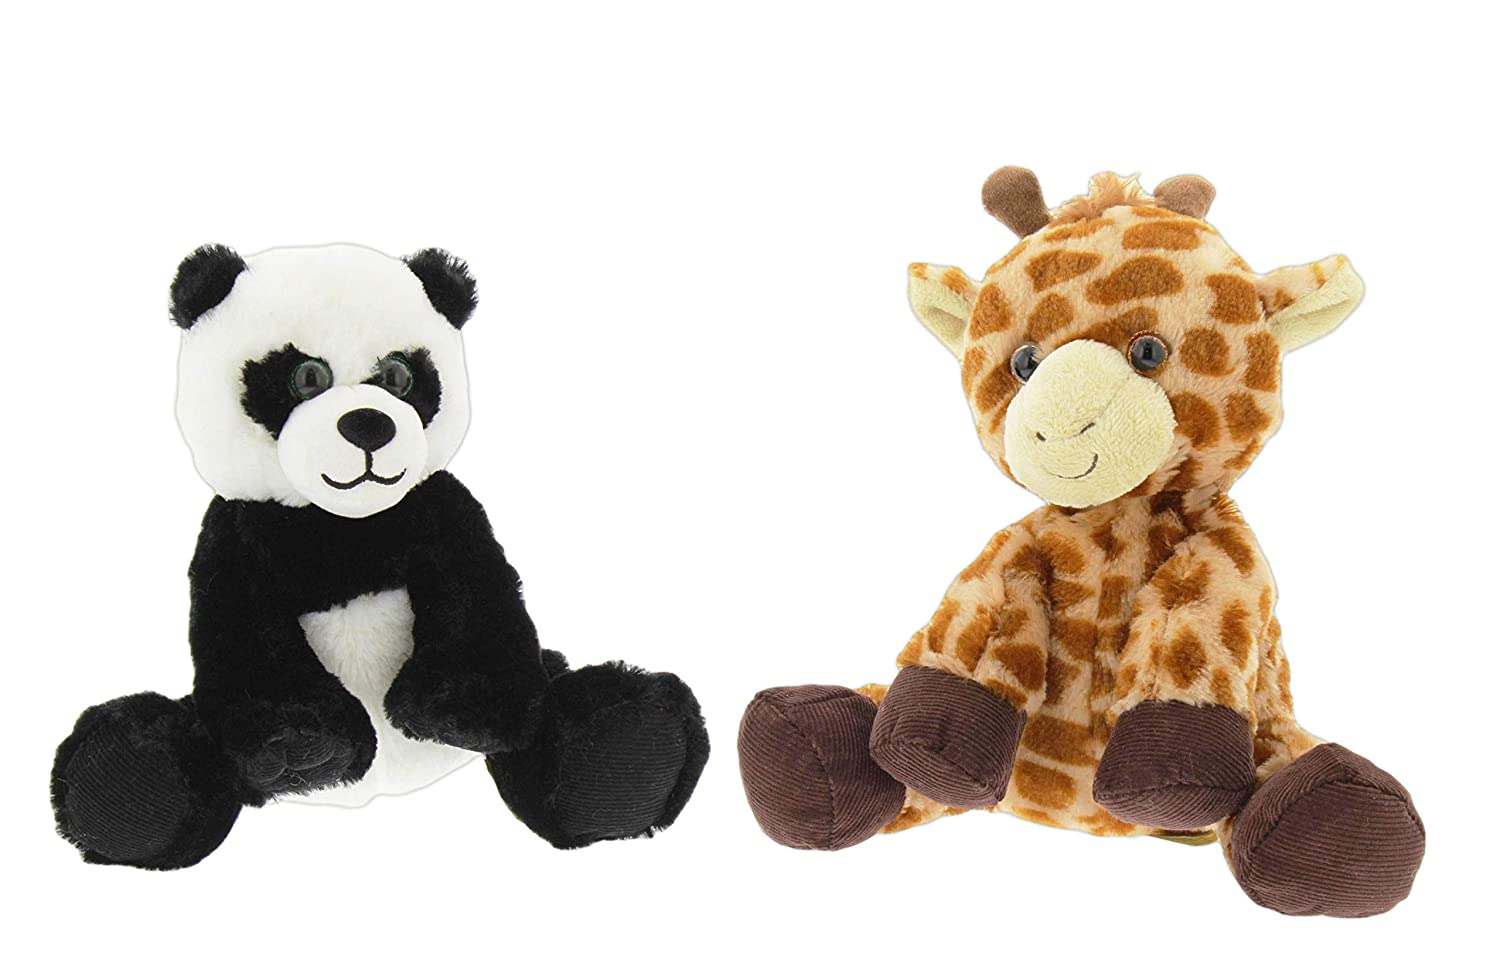 Sea Turtle /& Narwhal First /& Main Bundle of 2 Adorable Plush Stuffed Animals